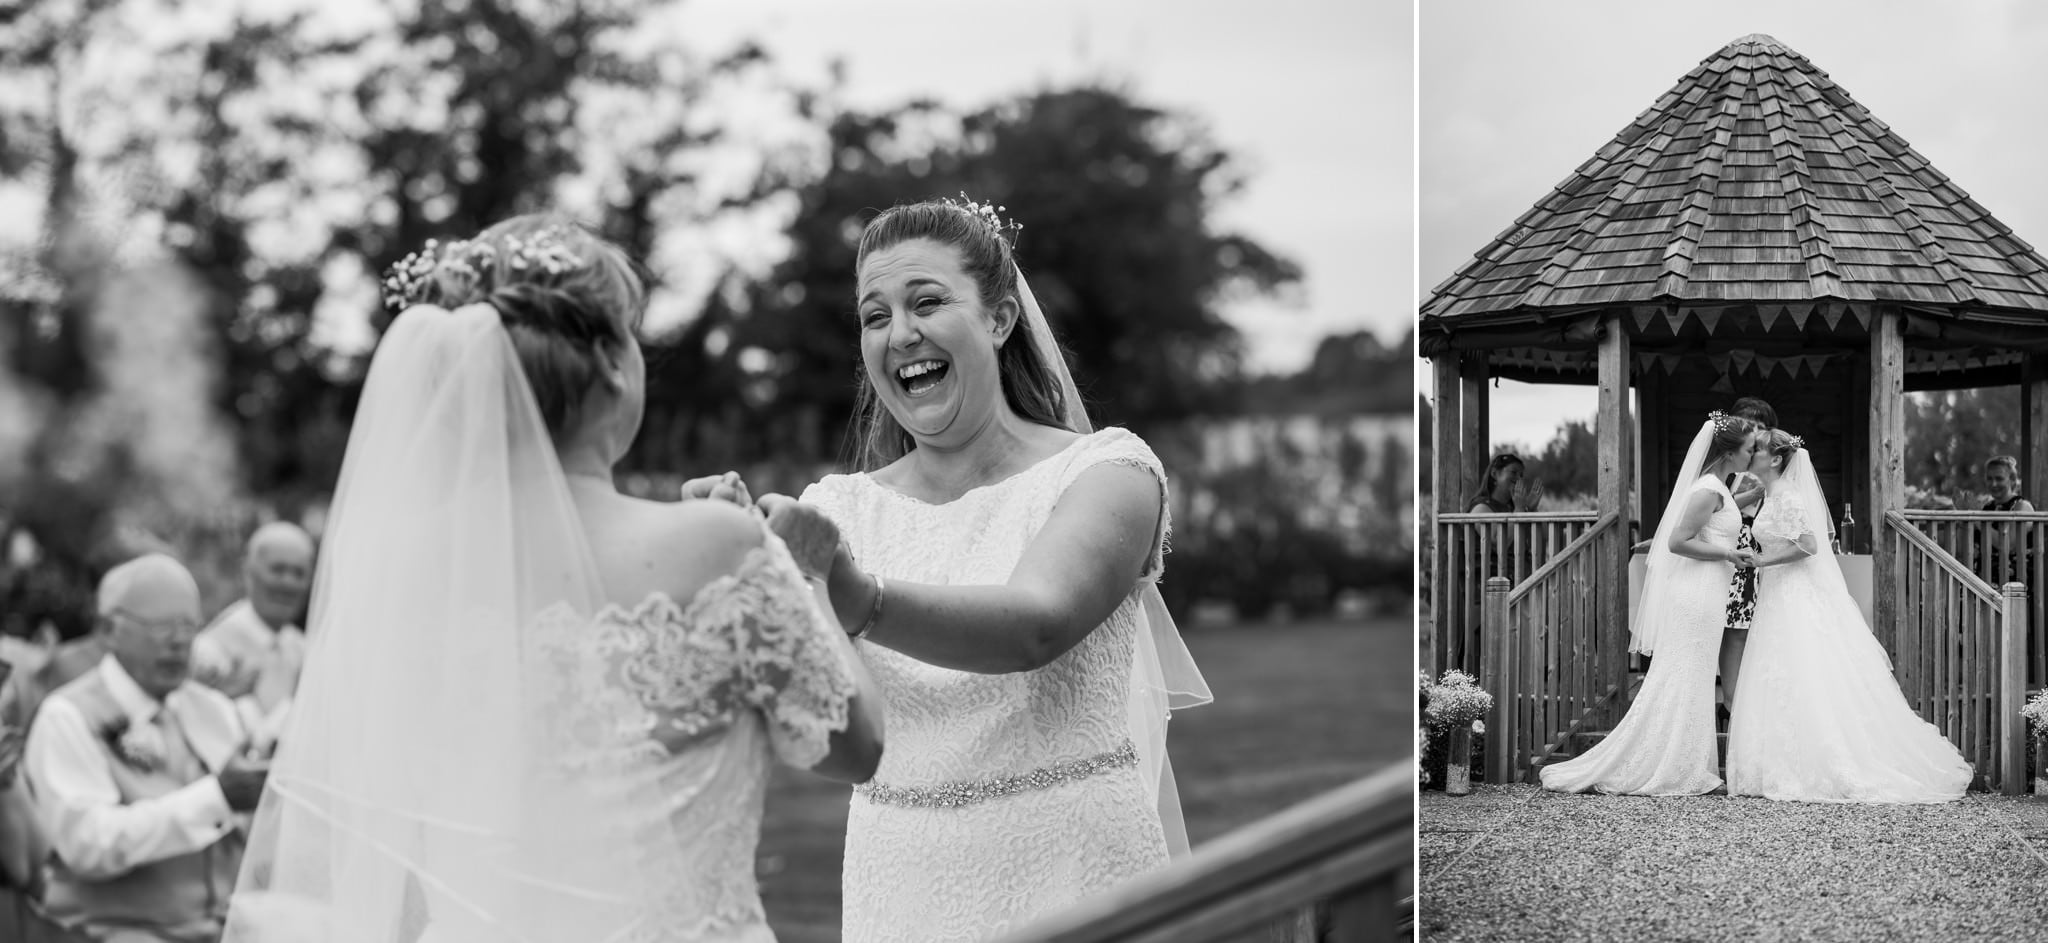 Black and white photography at Three Choirs Vineyard wedding